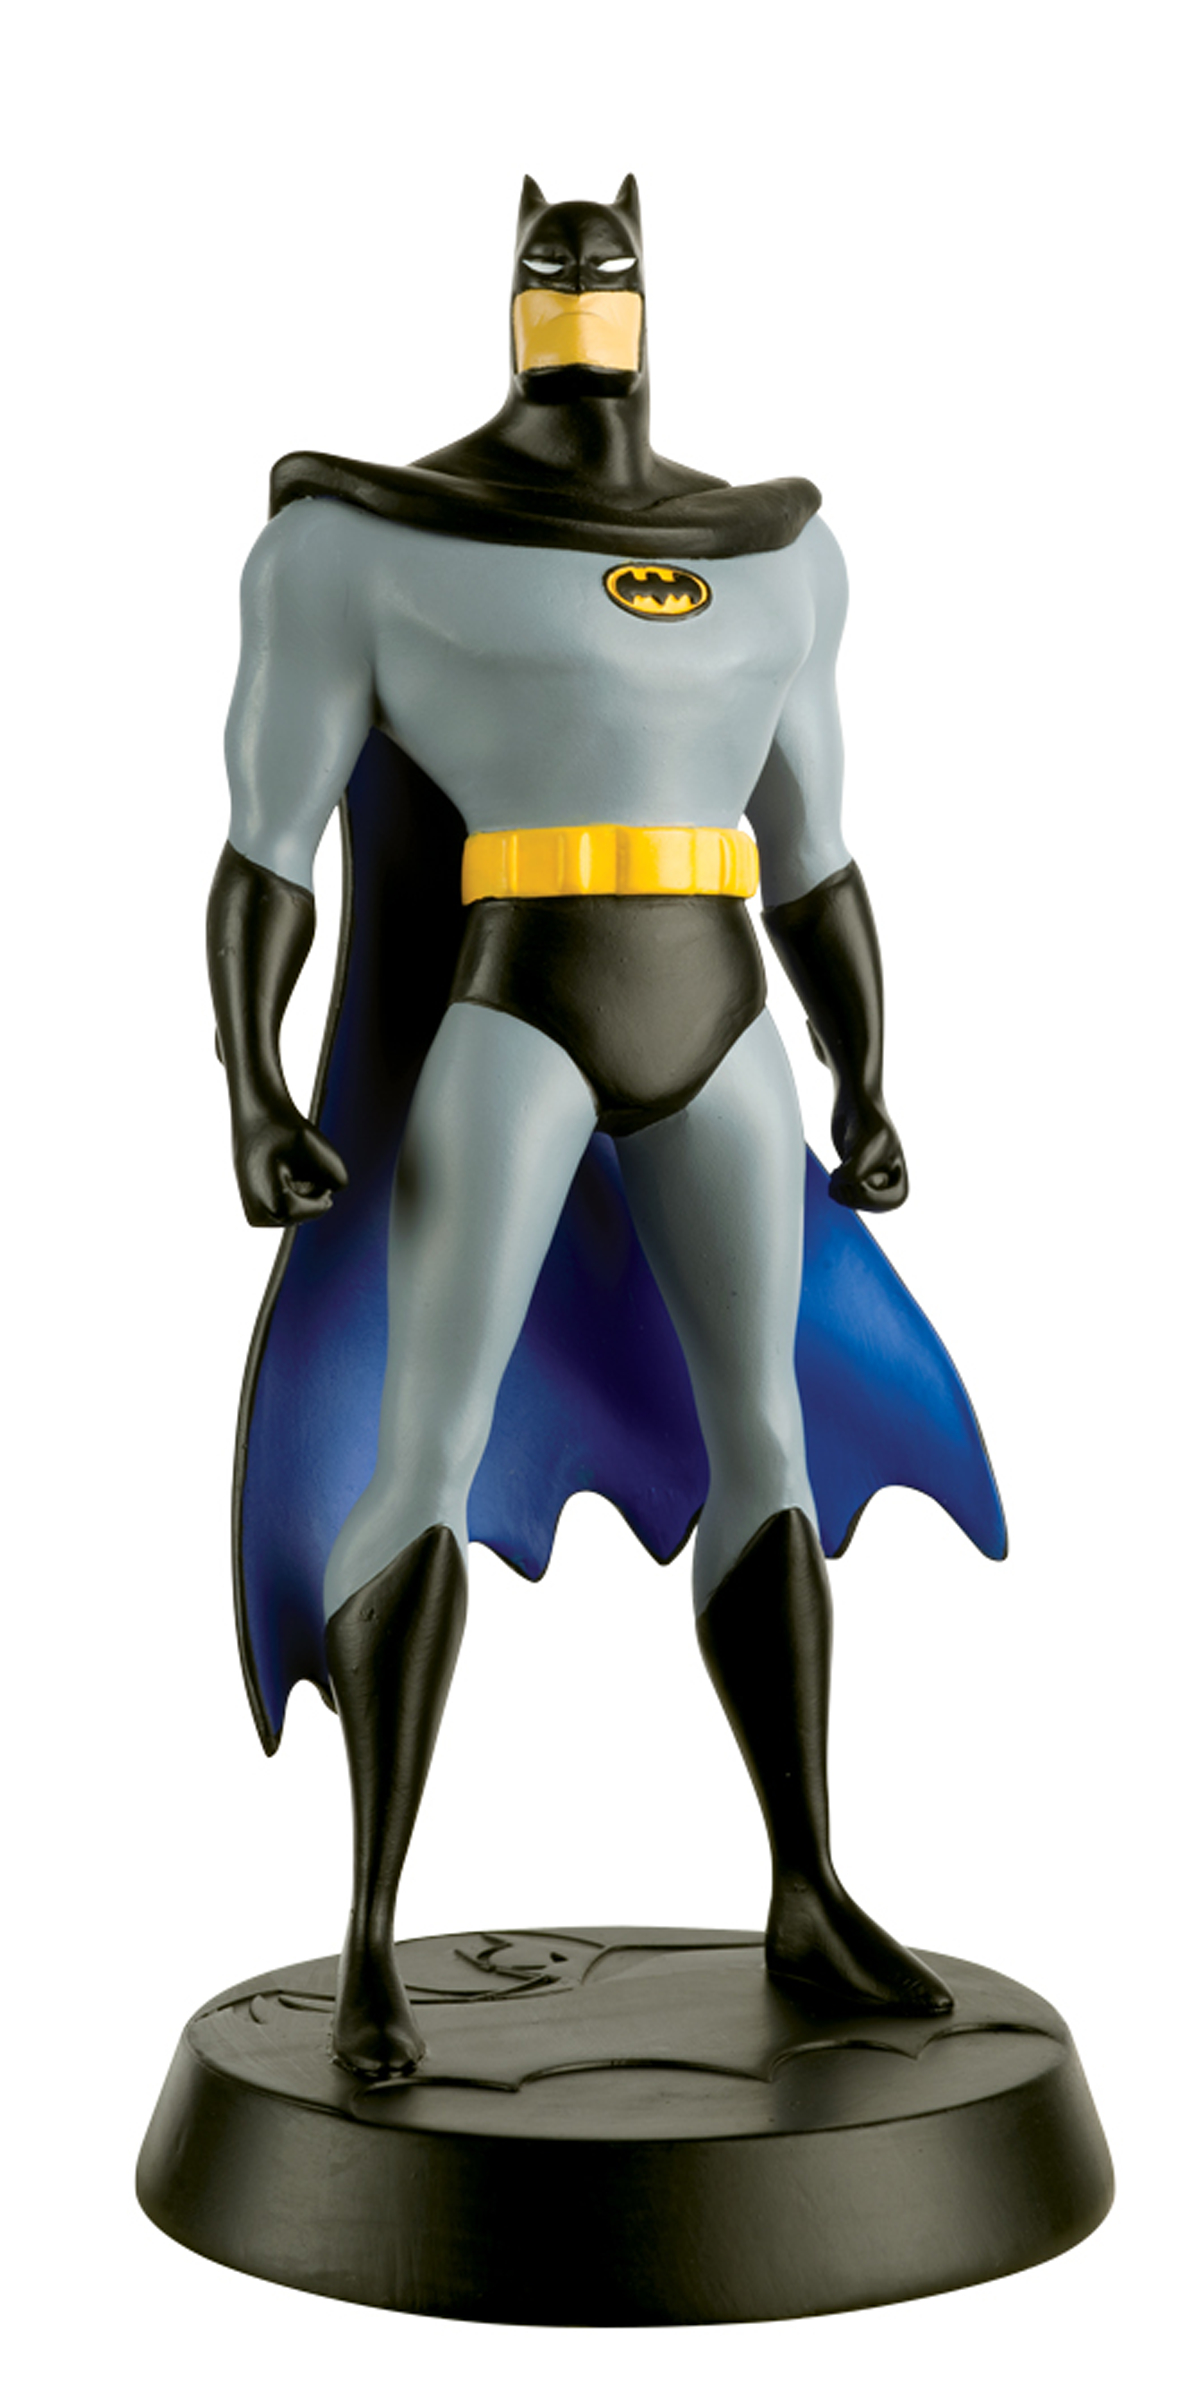 Eaglemoss' Batman: The Animated Series Figurine Collection ...